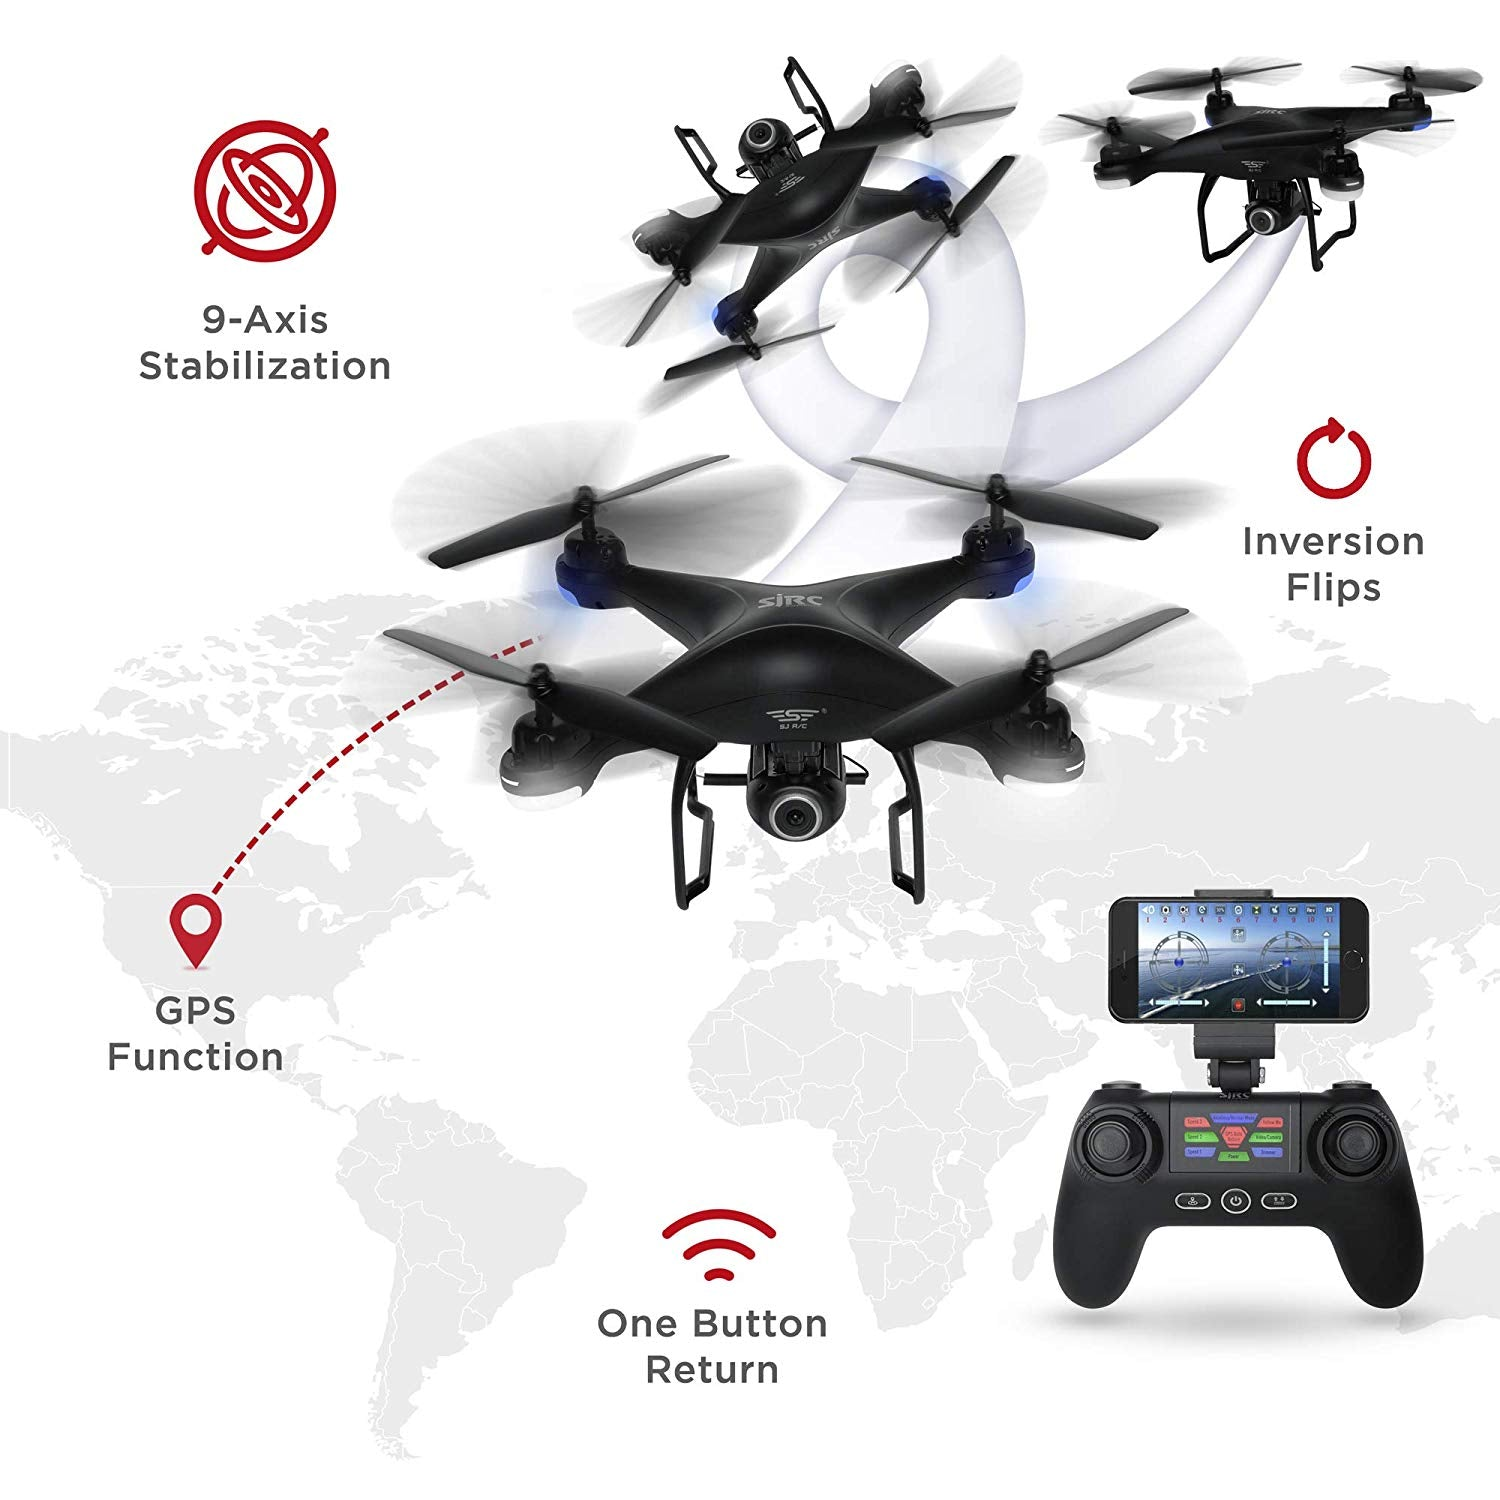 2.4G FPV RC Quadcopter GPS Drone w/ 720P Live HD Wifi Camera, VR Headset Compatible, Follow Mode, One-Key Takeoff/Landing, Auto-Return, Headless Mode, Altitude Hold, Extra Battery